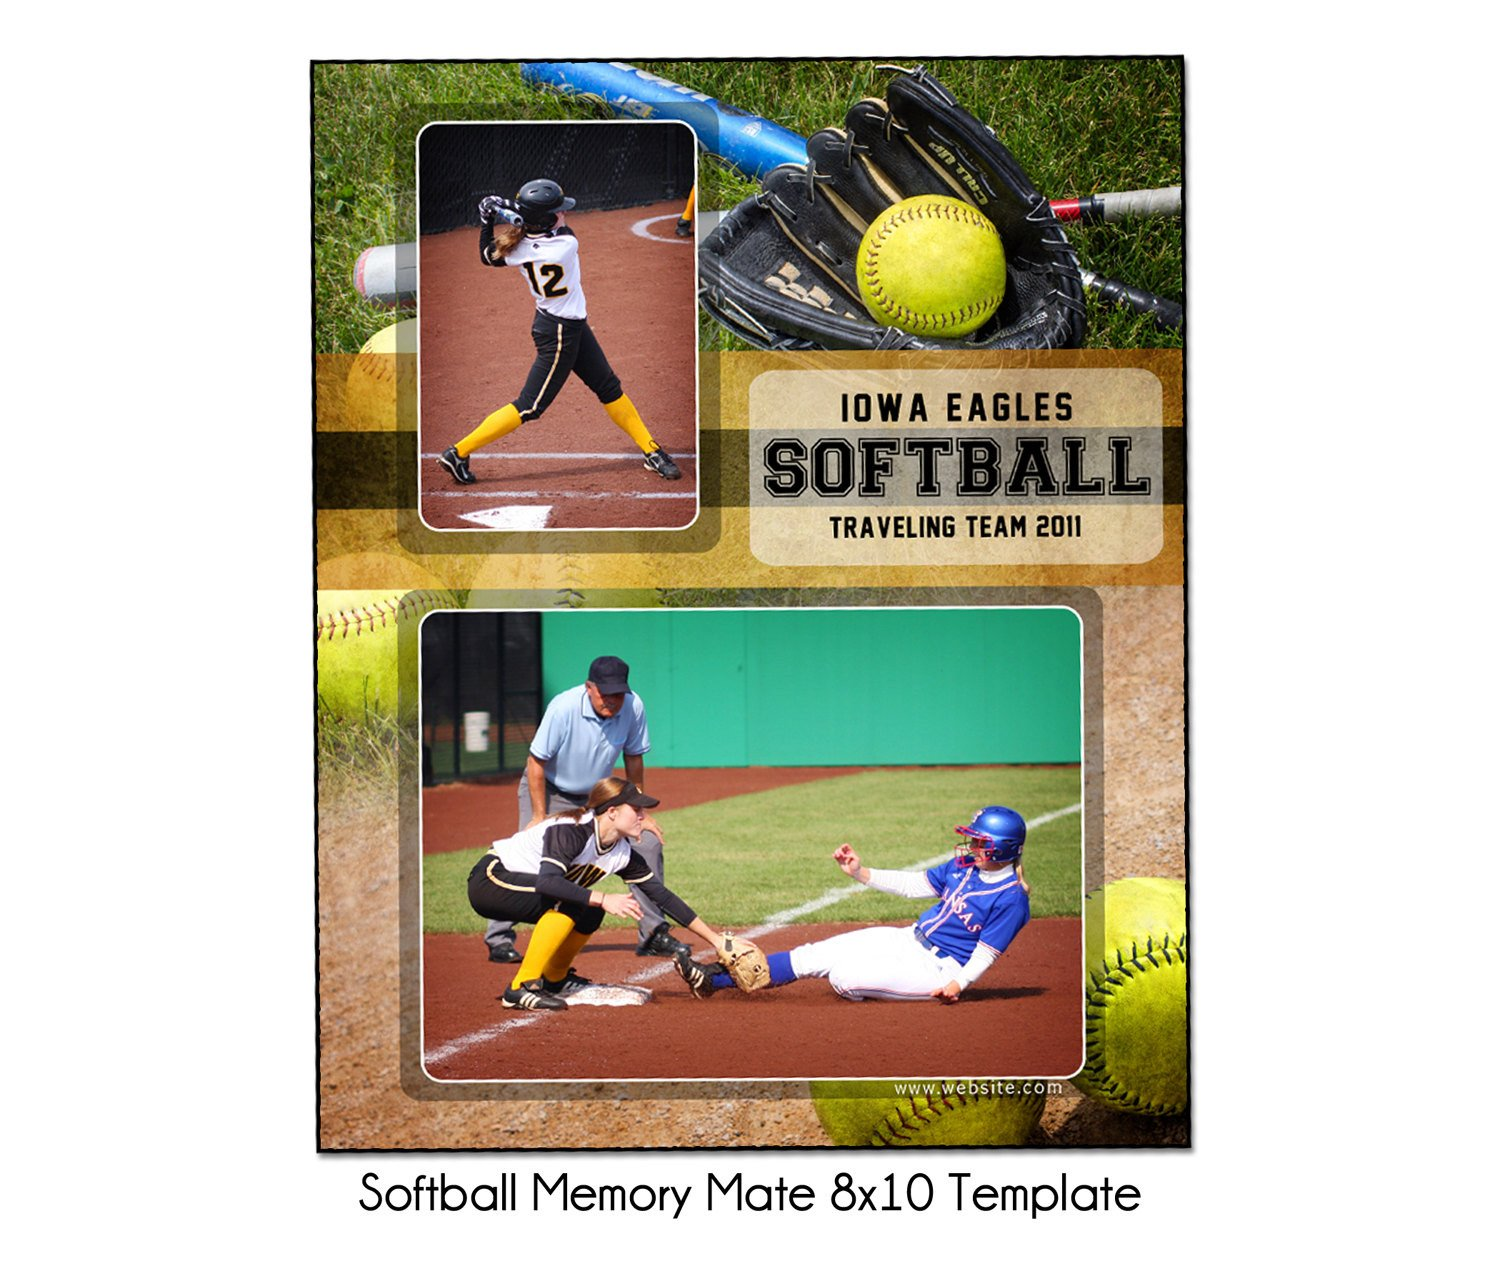 Softball Memory Mate Template softball Mm1 8x10 Memory Mate Sports Template